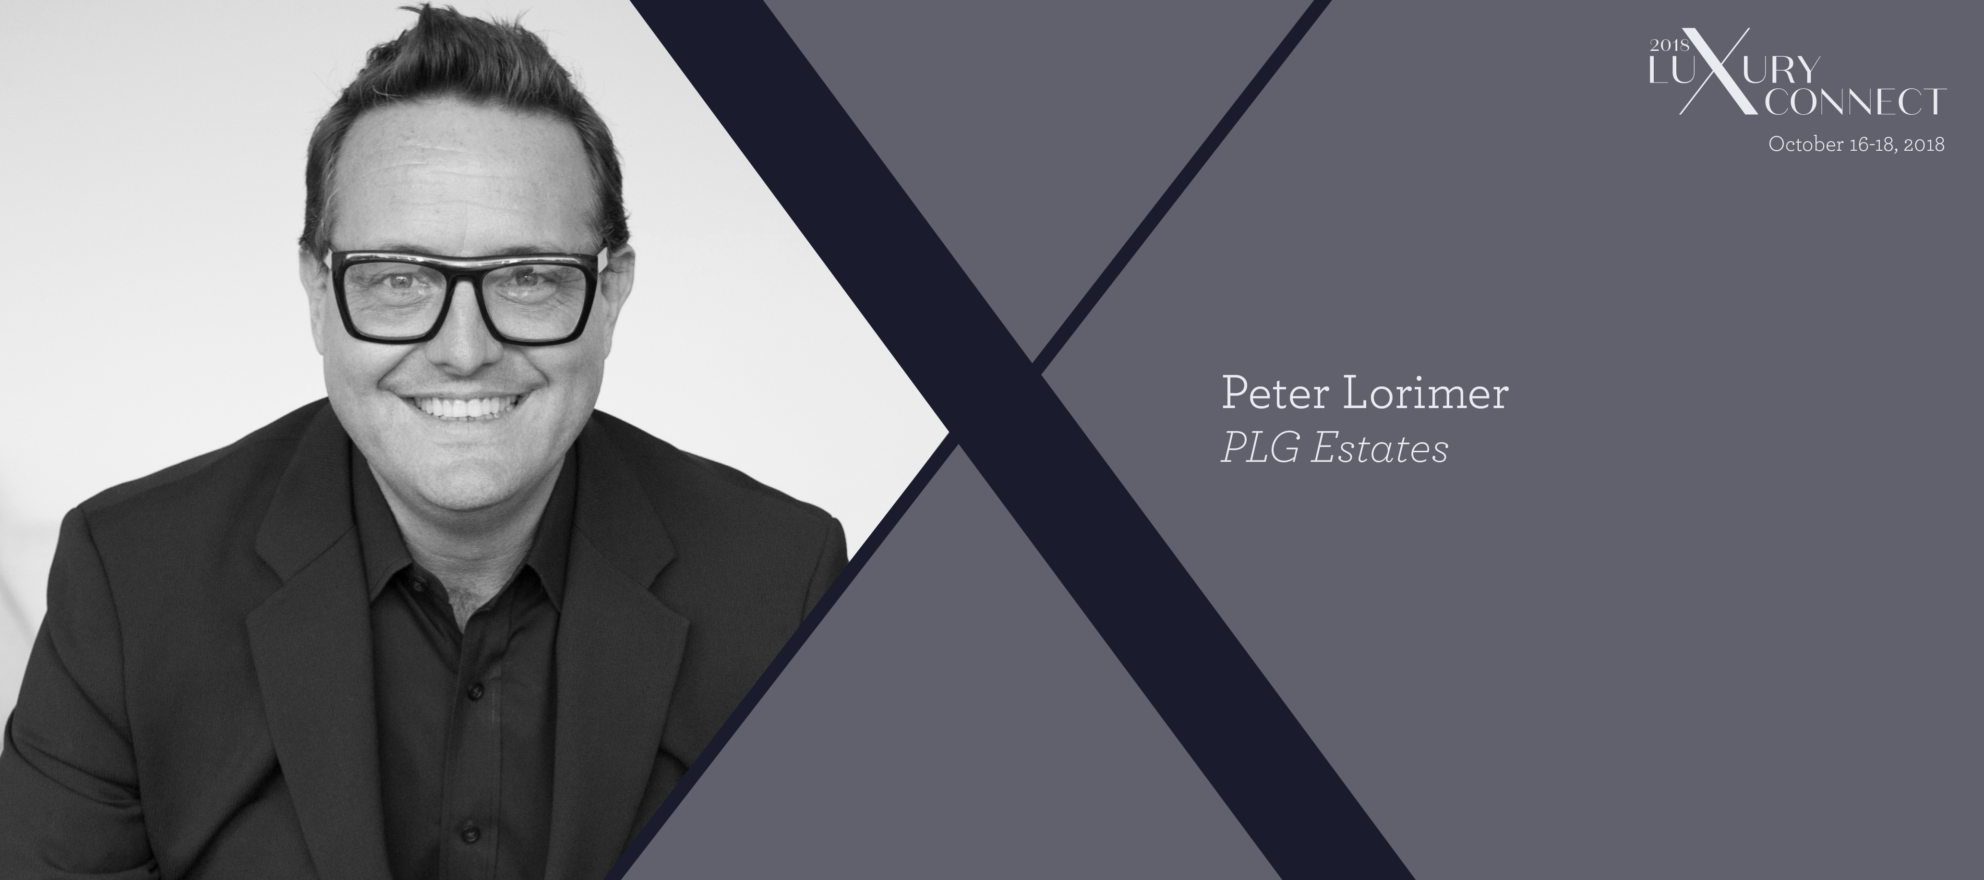 luxury connect peter lorimer